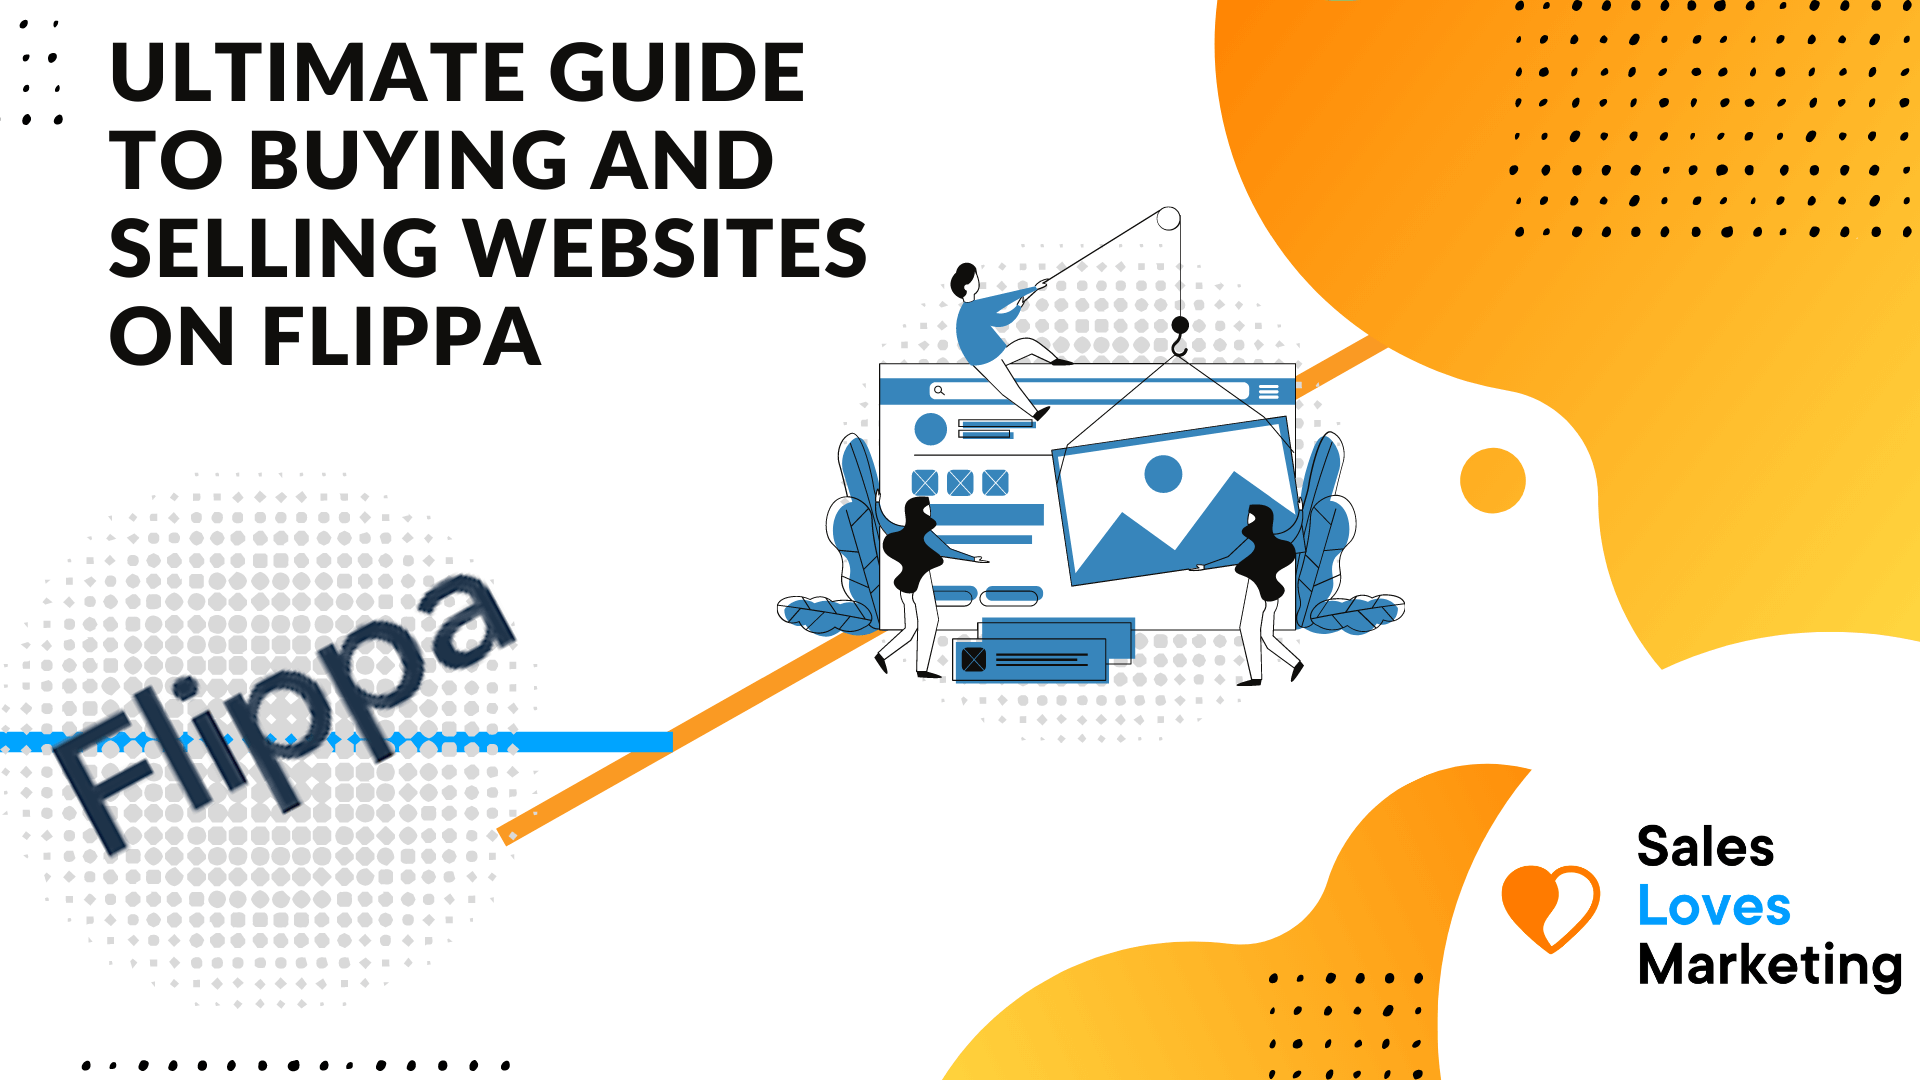 The Ultimate Guide to Buying and Selling Websites on Flippa 2021